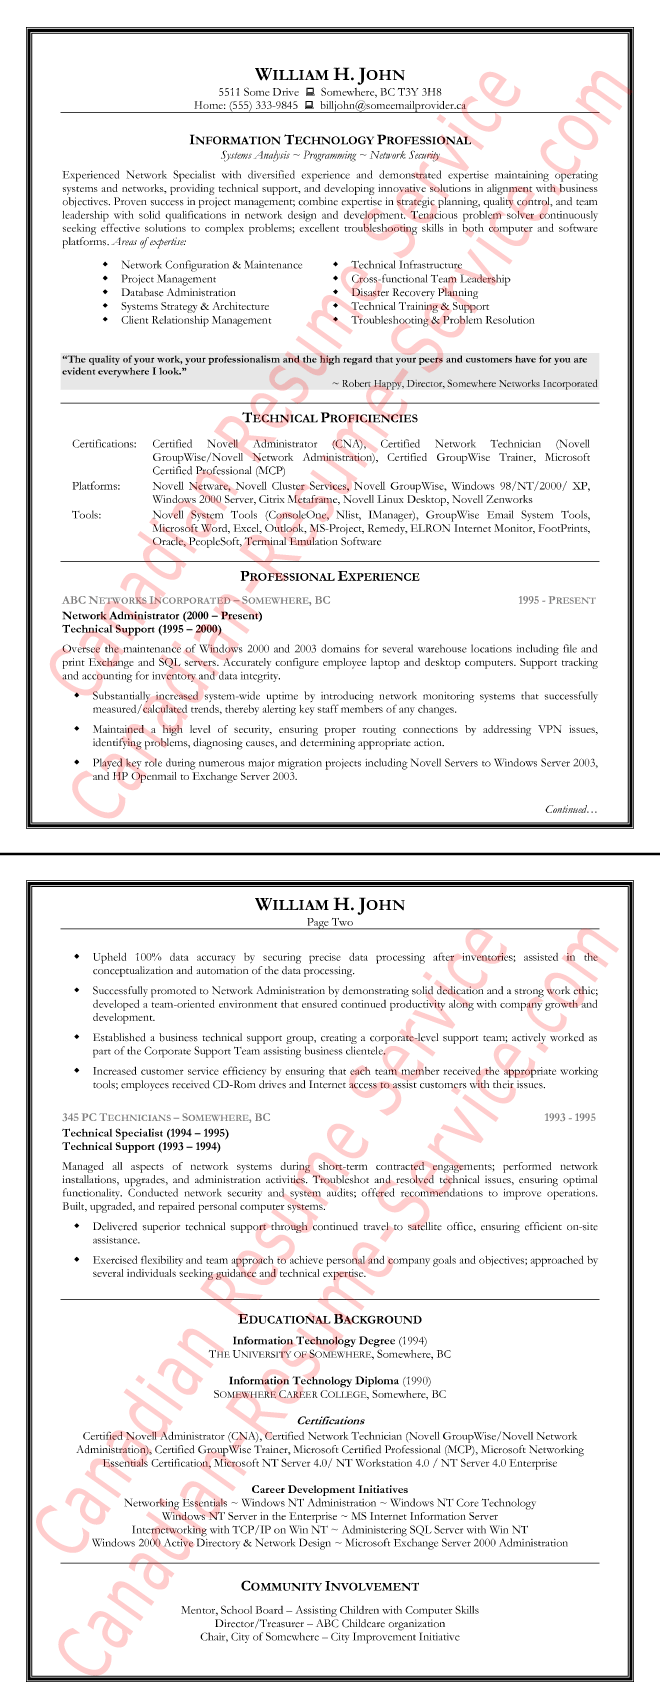 information technology resume sample - Information Technology Resume Template